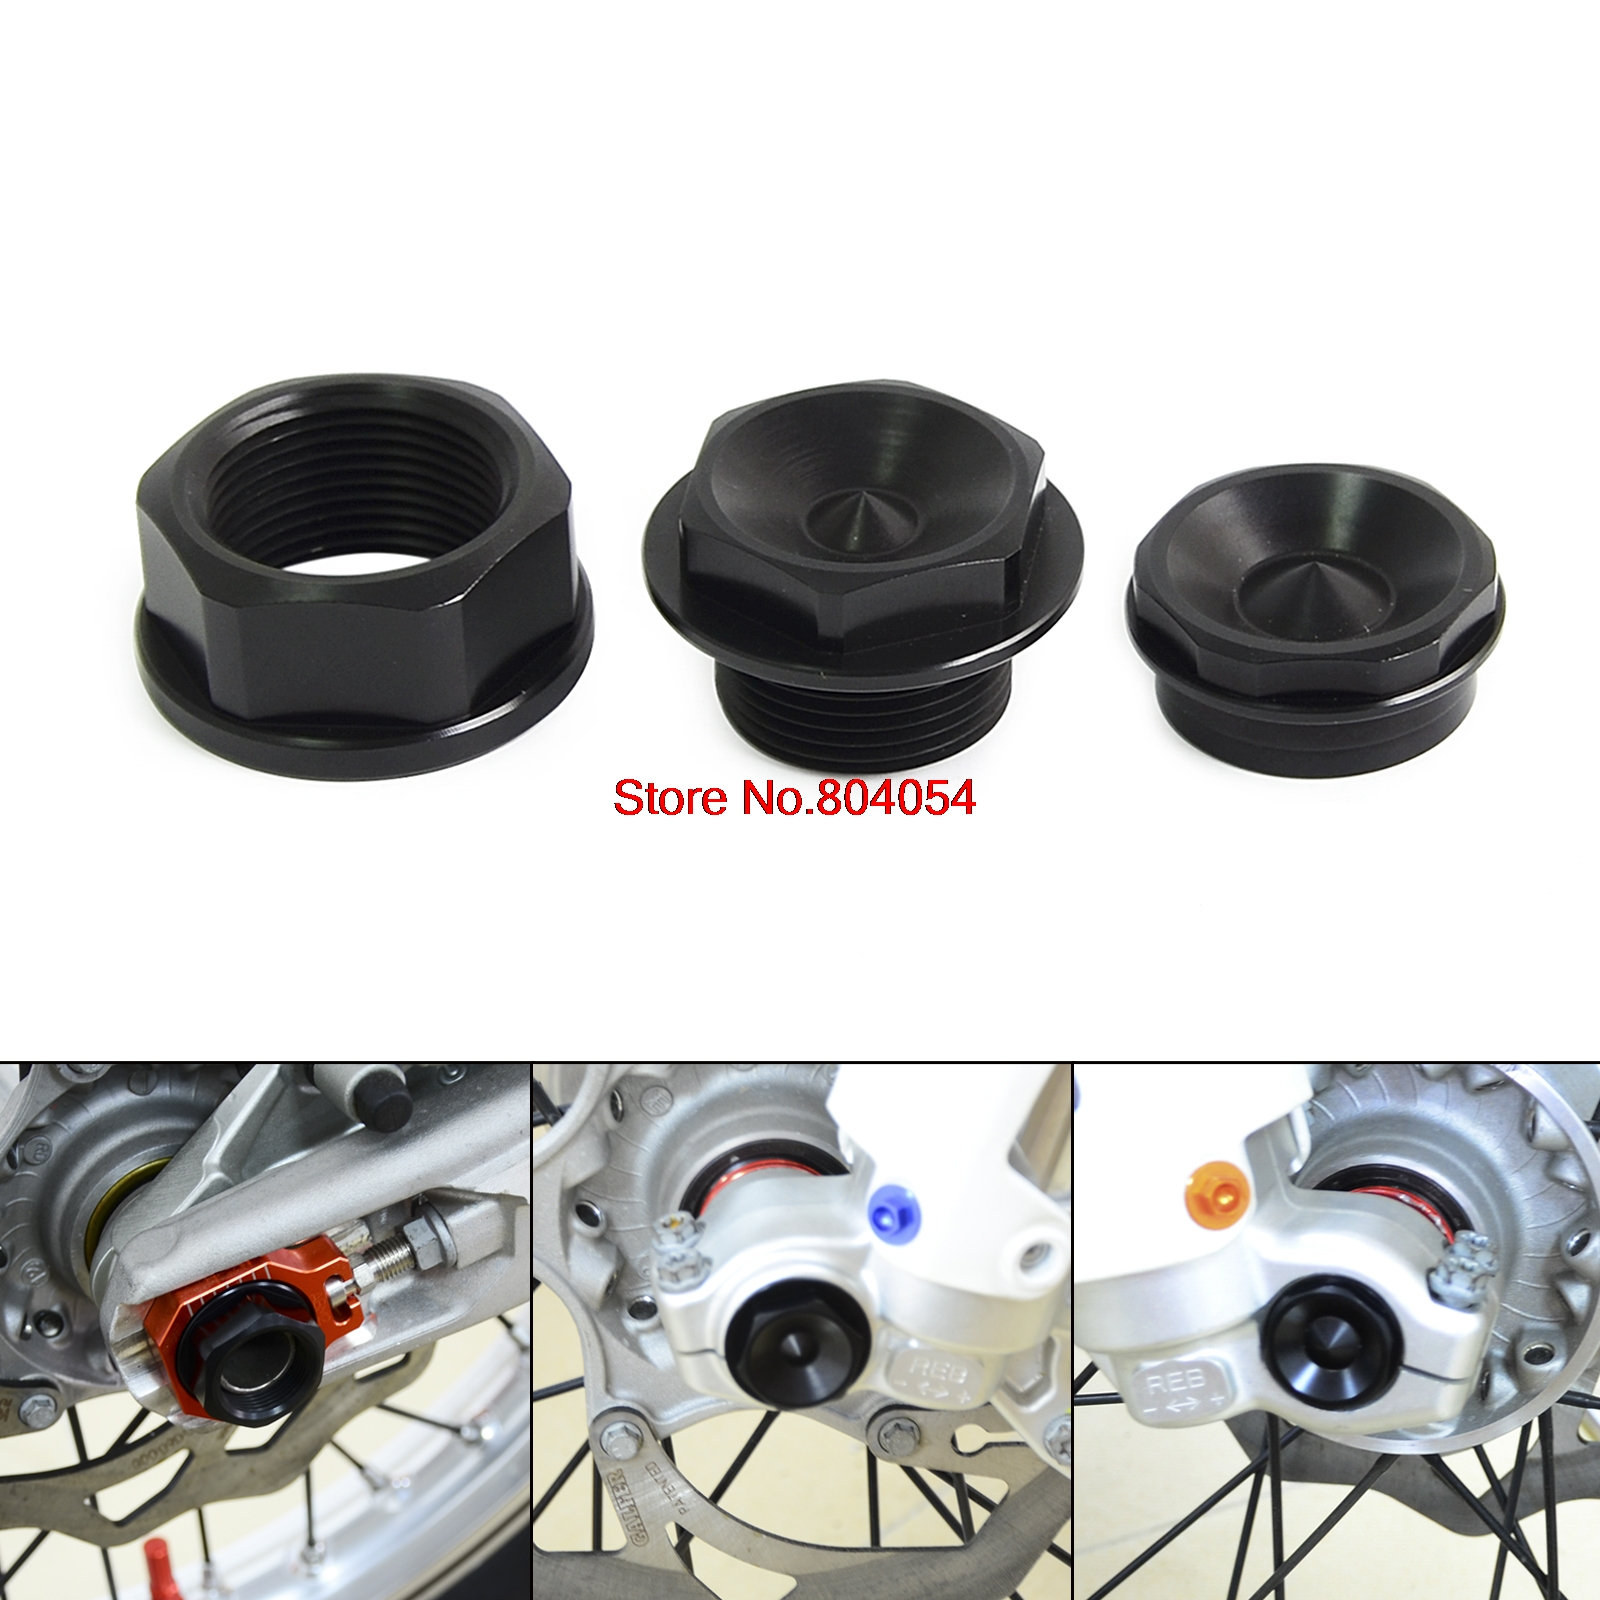 ФОТО Front Left & Right Wheel Spindle Collar Screw Bolt Kit for KTM 125 144 150 200 250 300 350 SX SXS XC EXC XCW XCF SXF EXCF XCFW